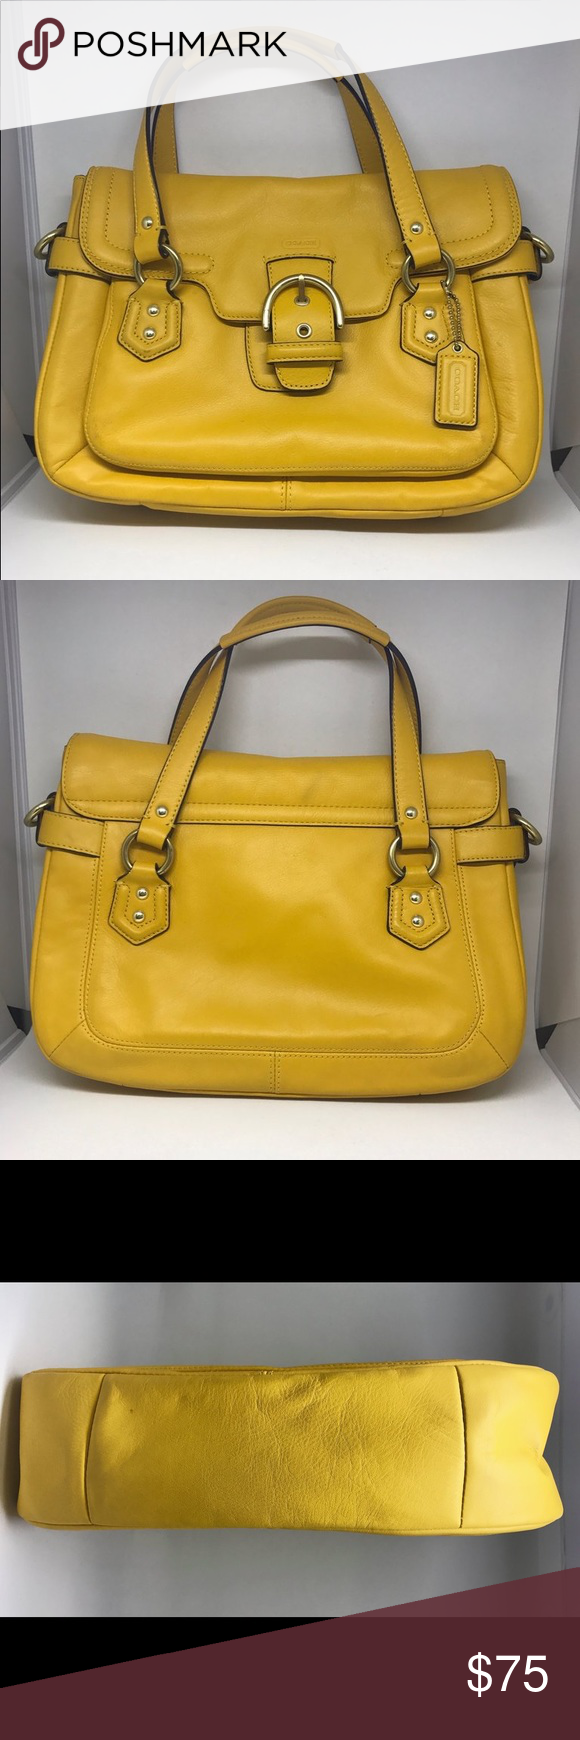 462a49fb63 Coach Purse 195199 Yellow Leather 12